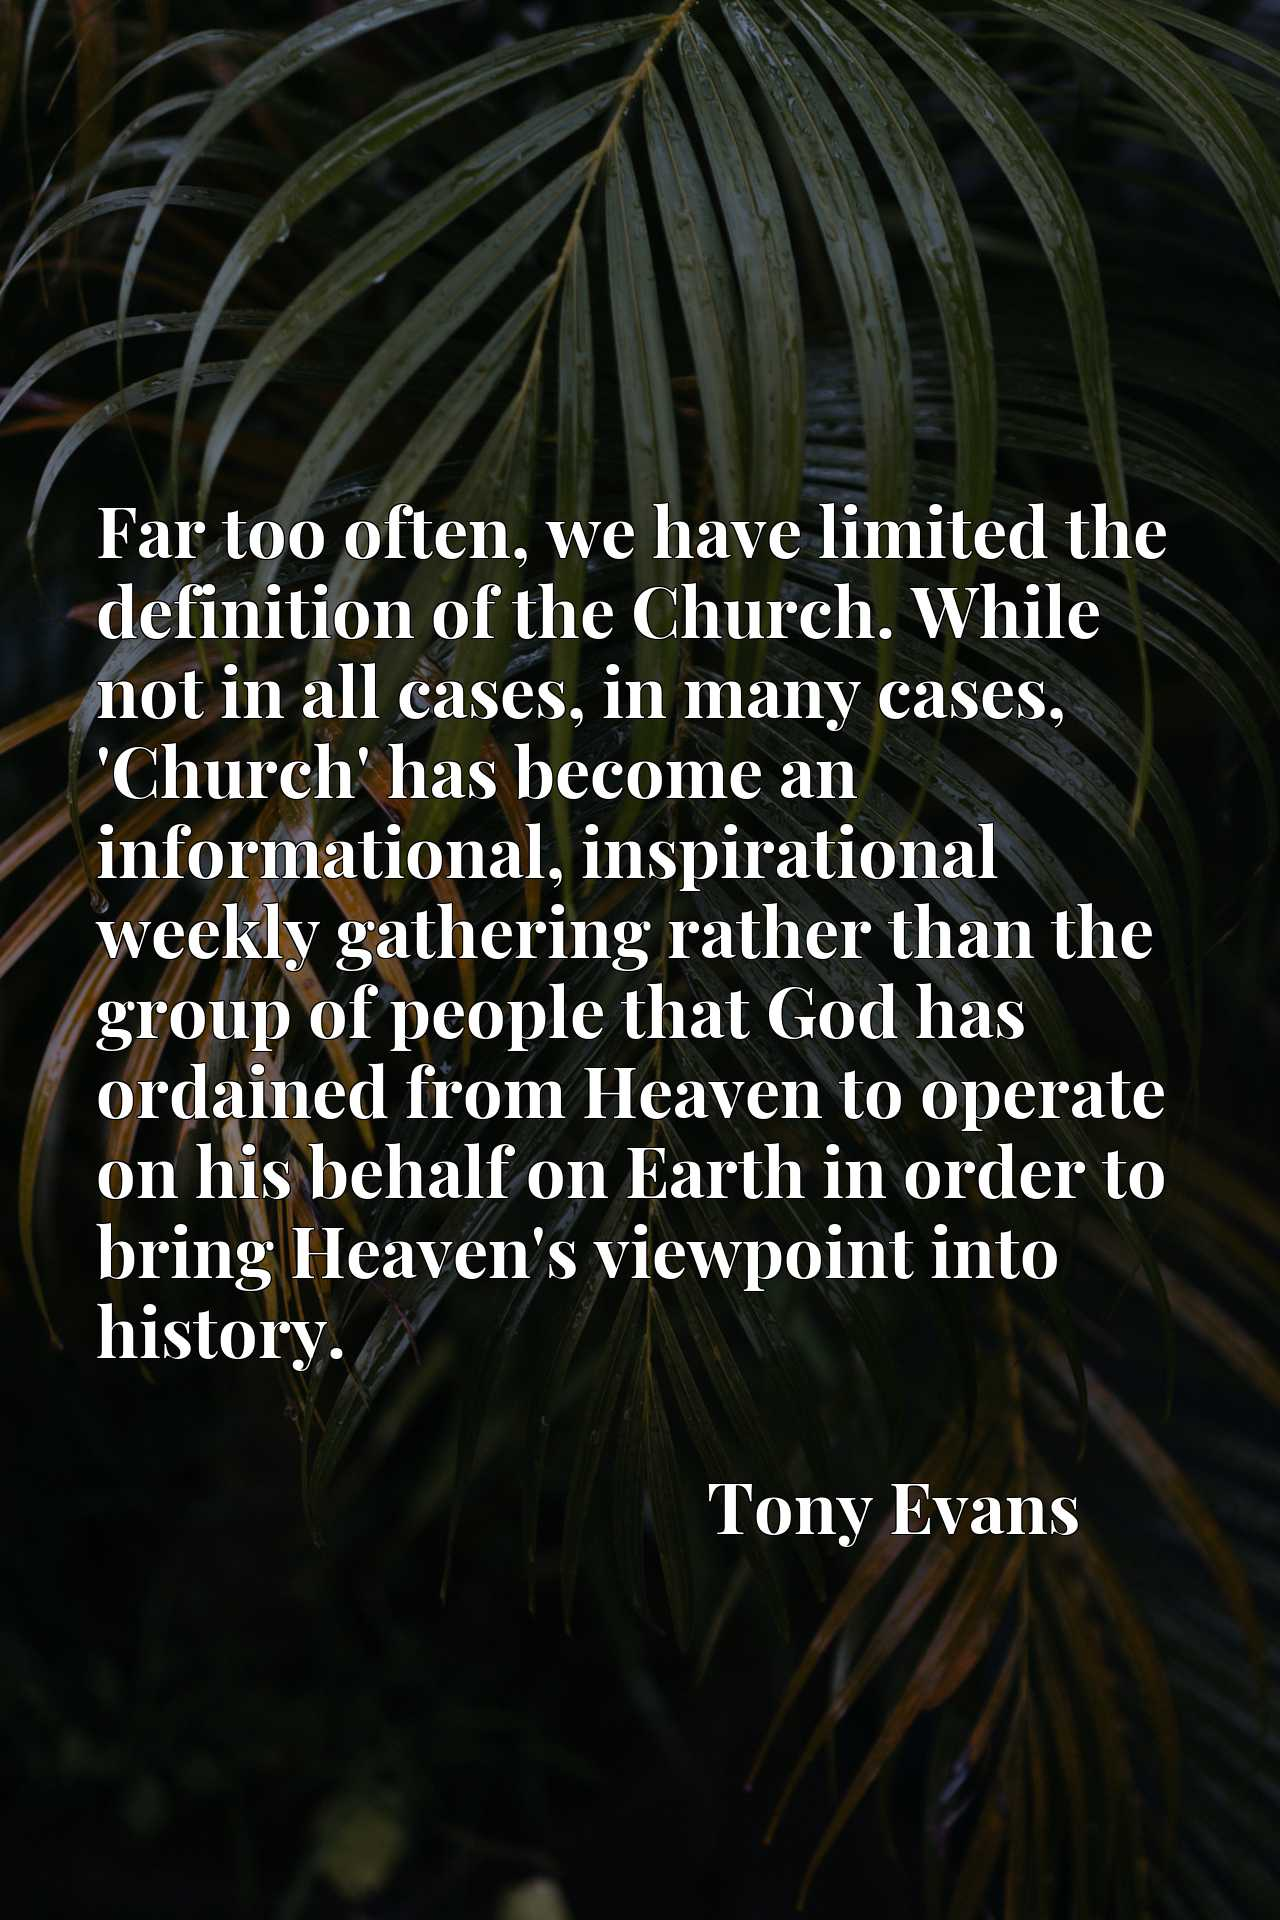 Far too often, we have limited the definition of the Church. While not in all cases, in many cases, 'Church' has become an informational, inspirational weekly gathering rather than the group of people that God has ordained from Heaven to operate on his behalf on Earth in order to bring Heaven's viewpoint into history.